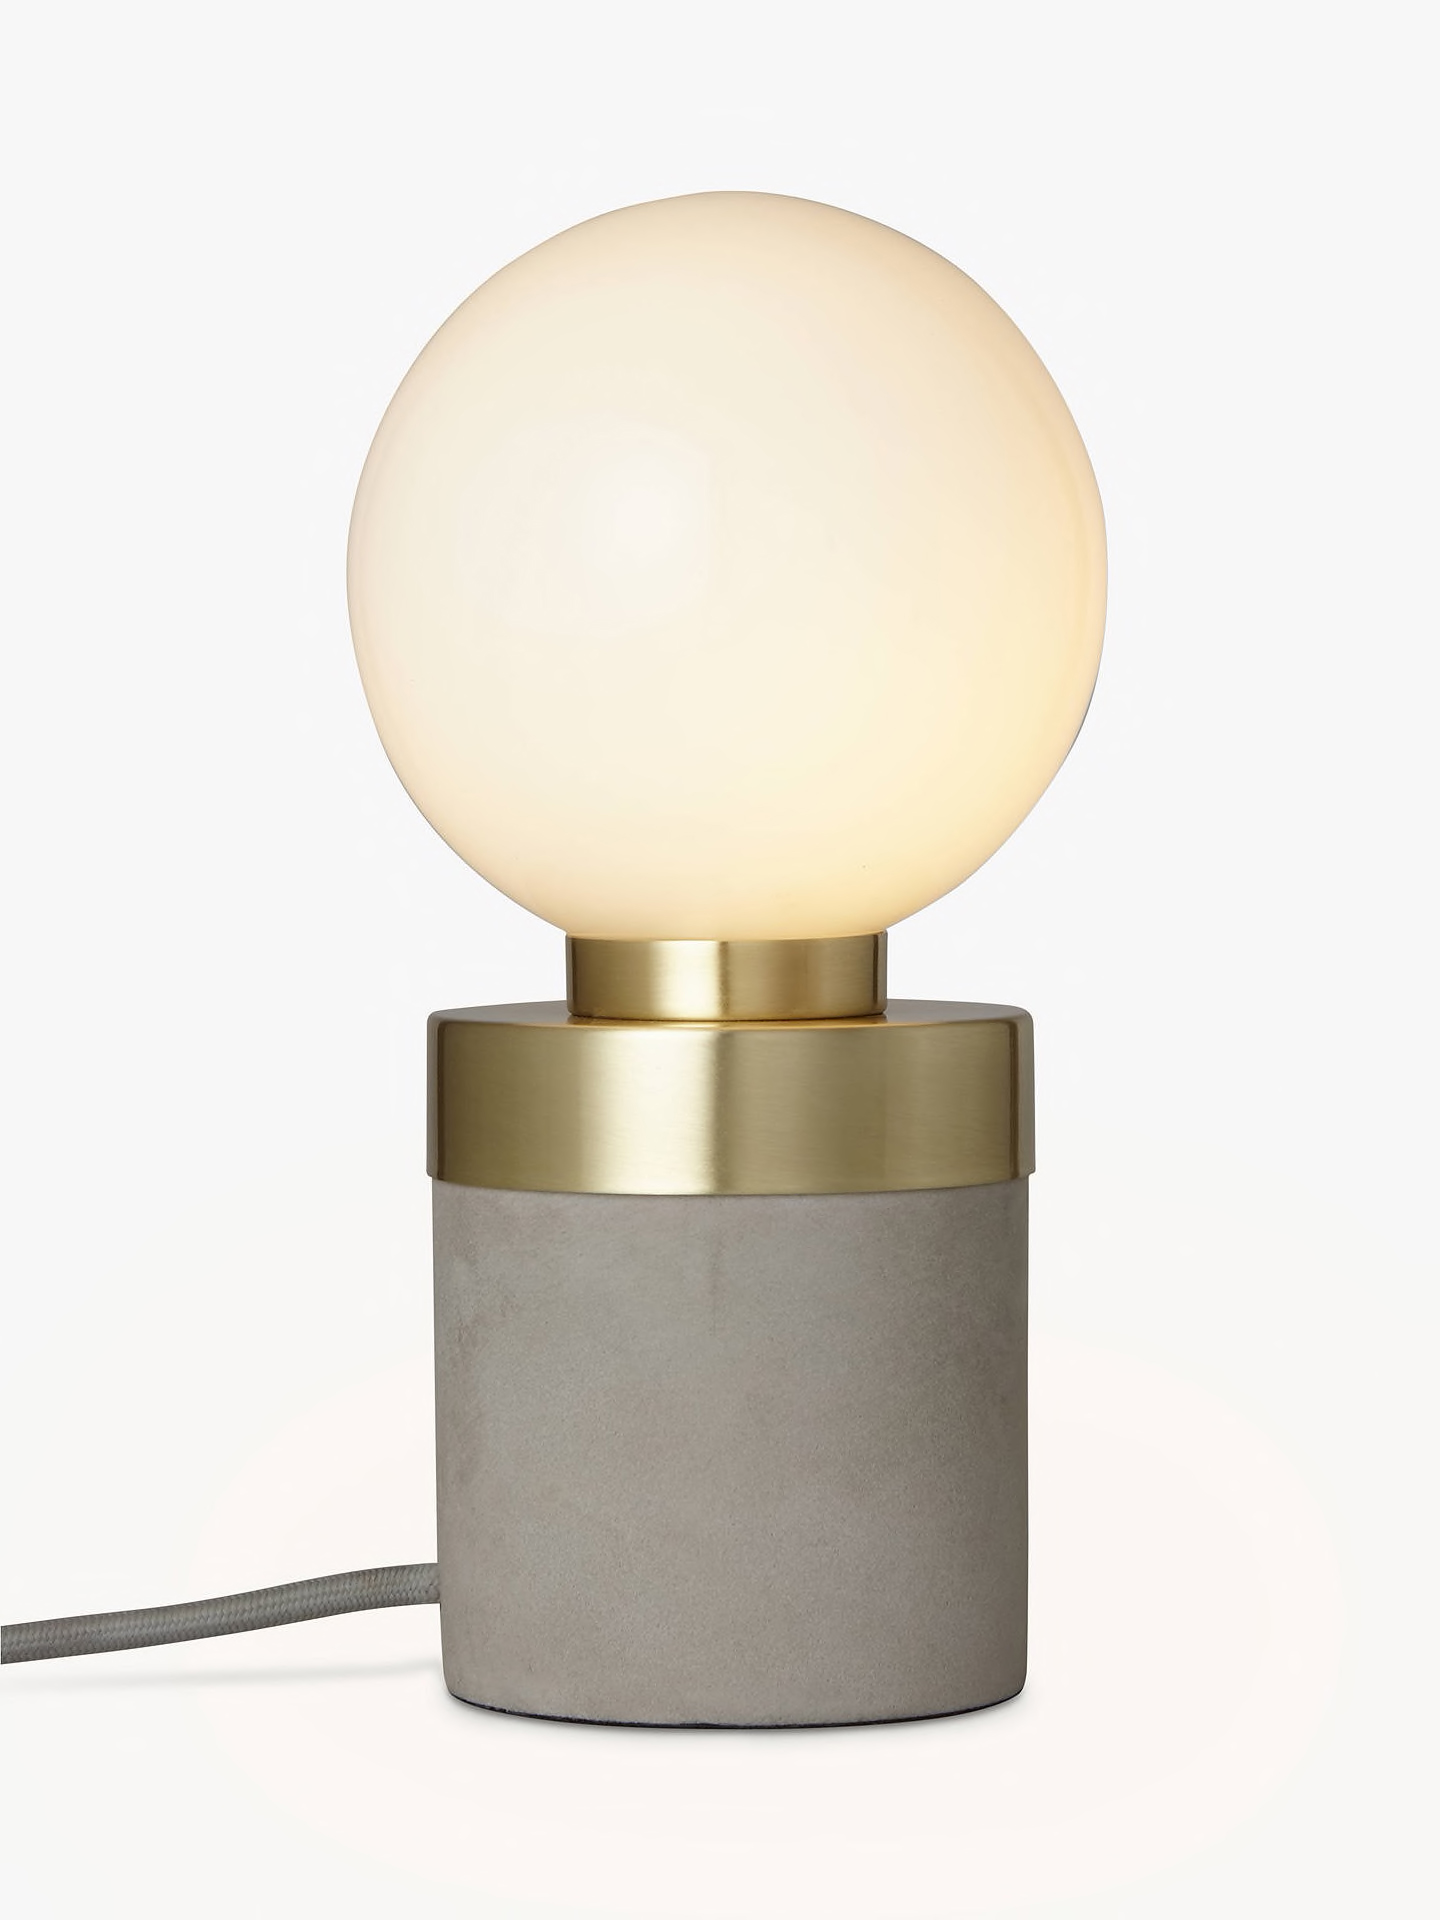 lights for elegant interiors concrete and brass table lamp